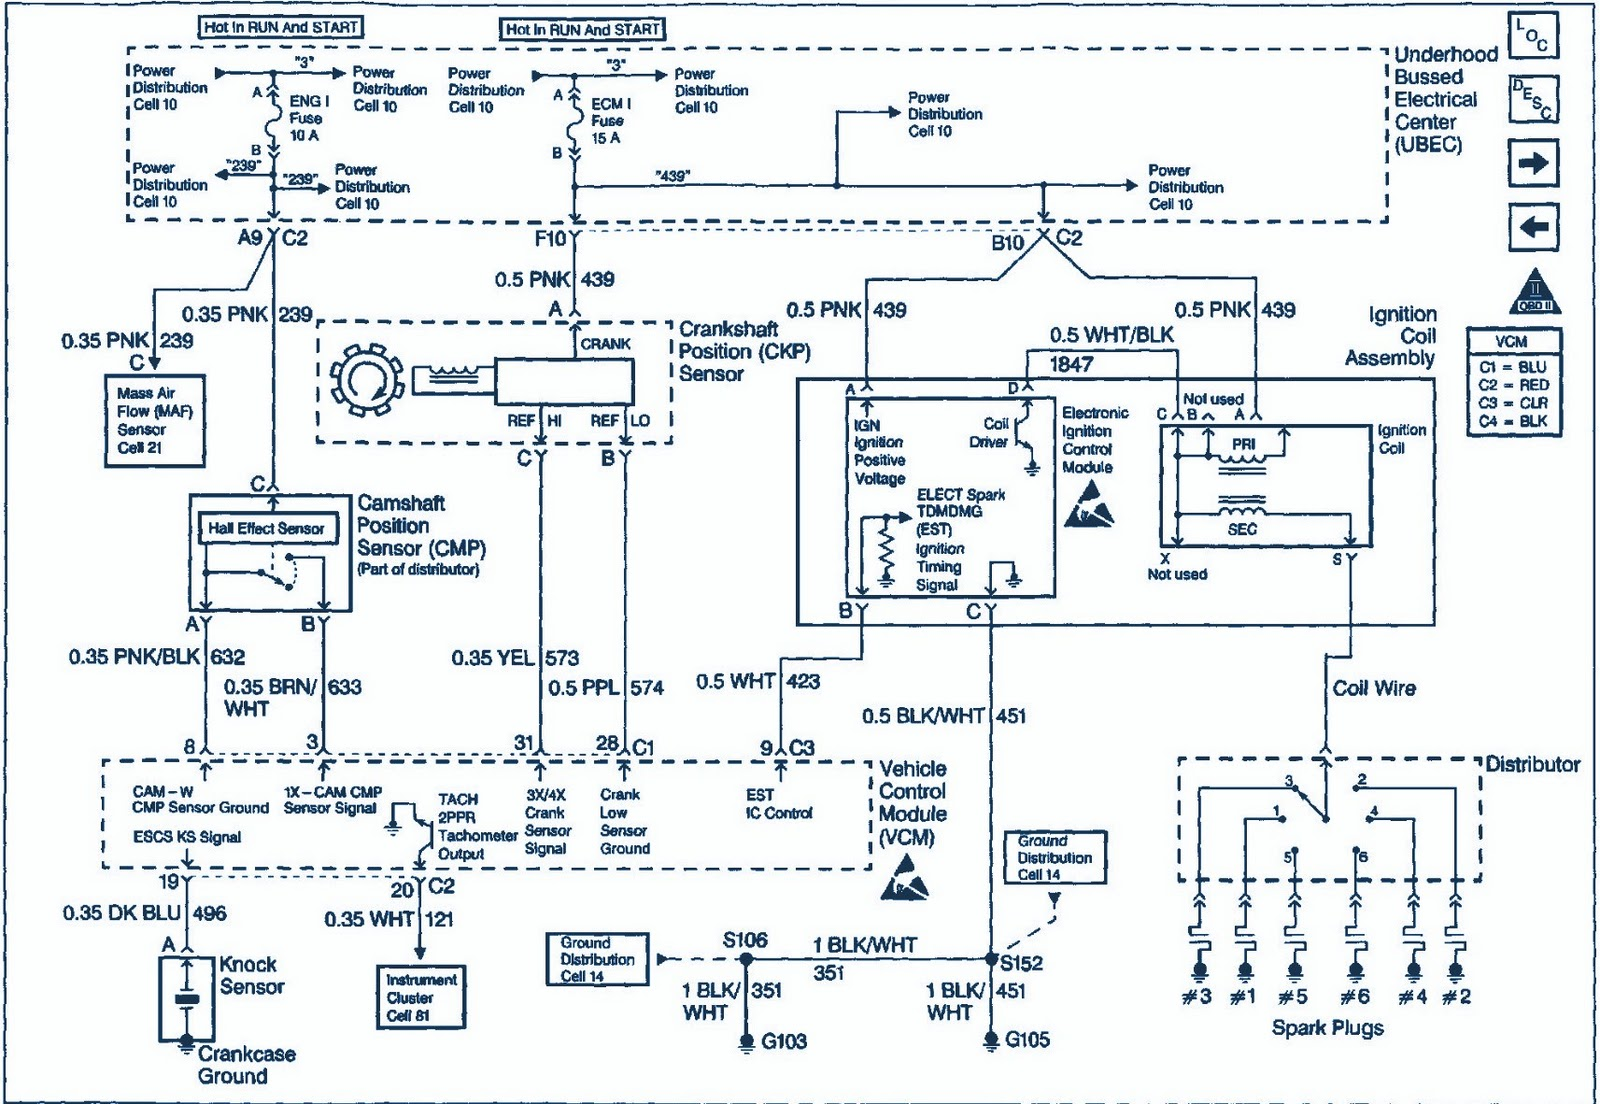 Wiring Diagram For 2006 Toyota Corolla